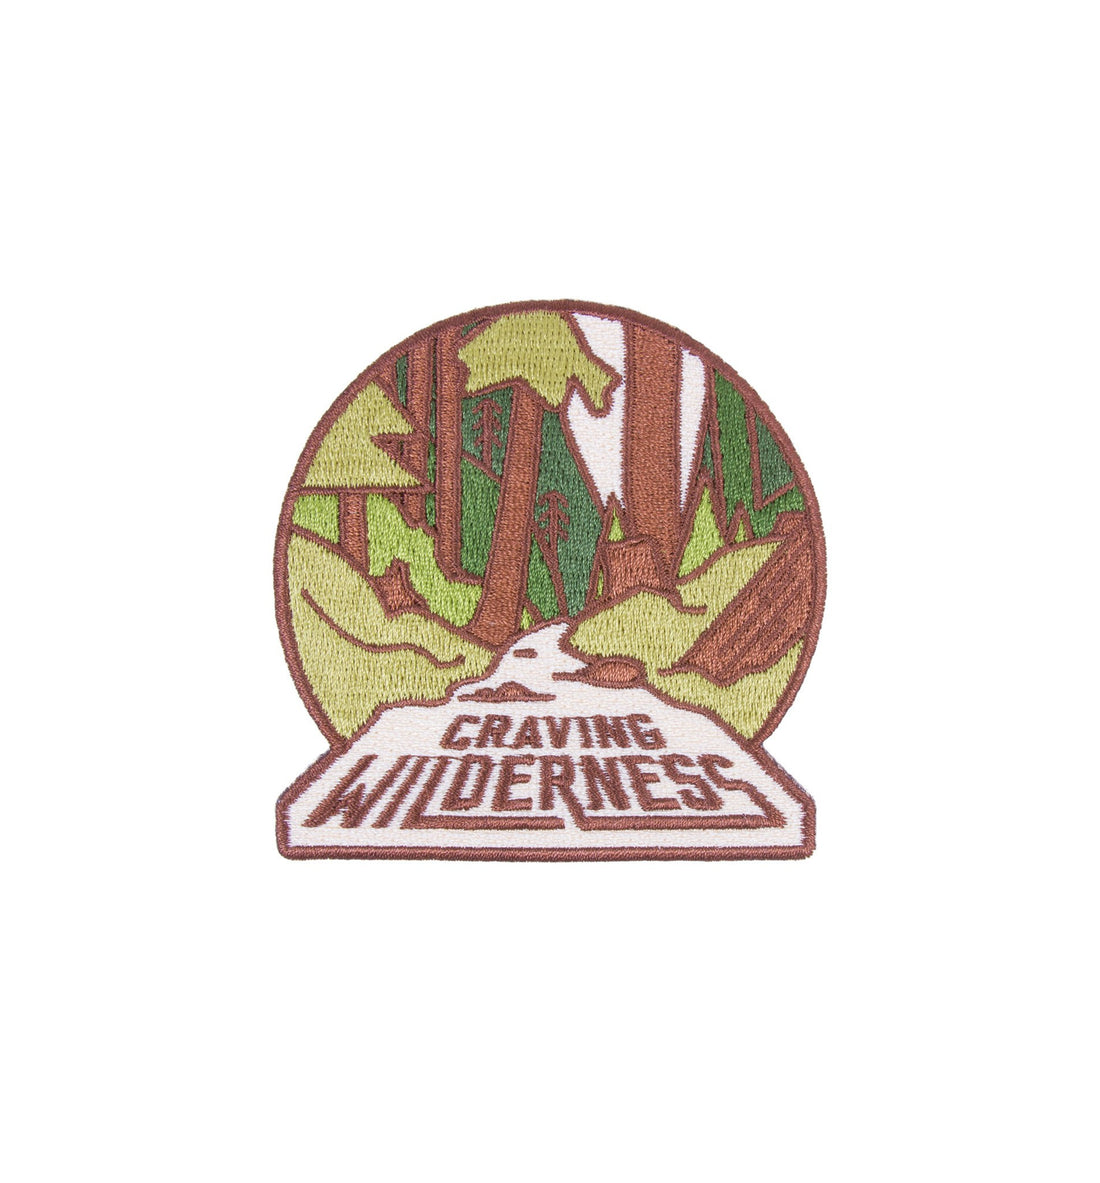 Asilda - Craving Wilderness Patch - Accessories: Patches - Iron and Resin